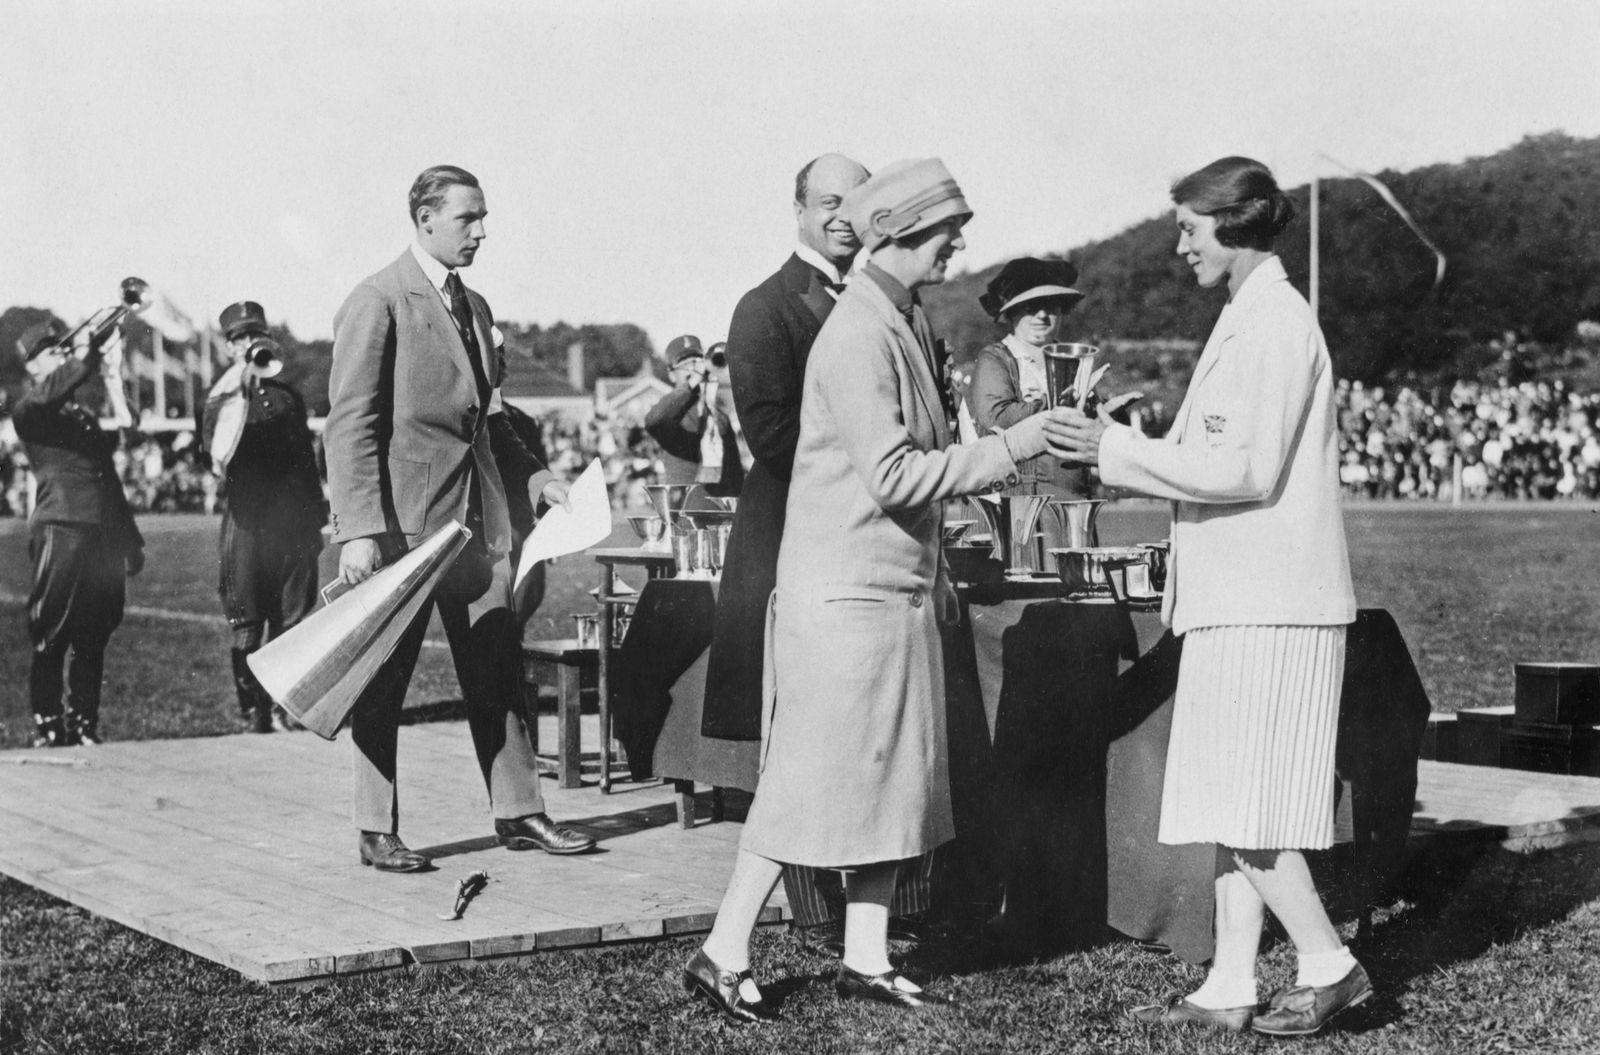 1926 Women's World Games - Prize Giving